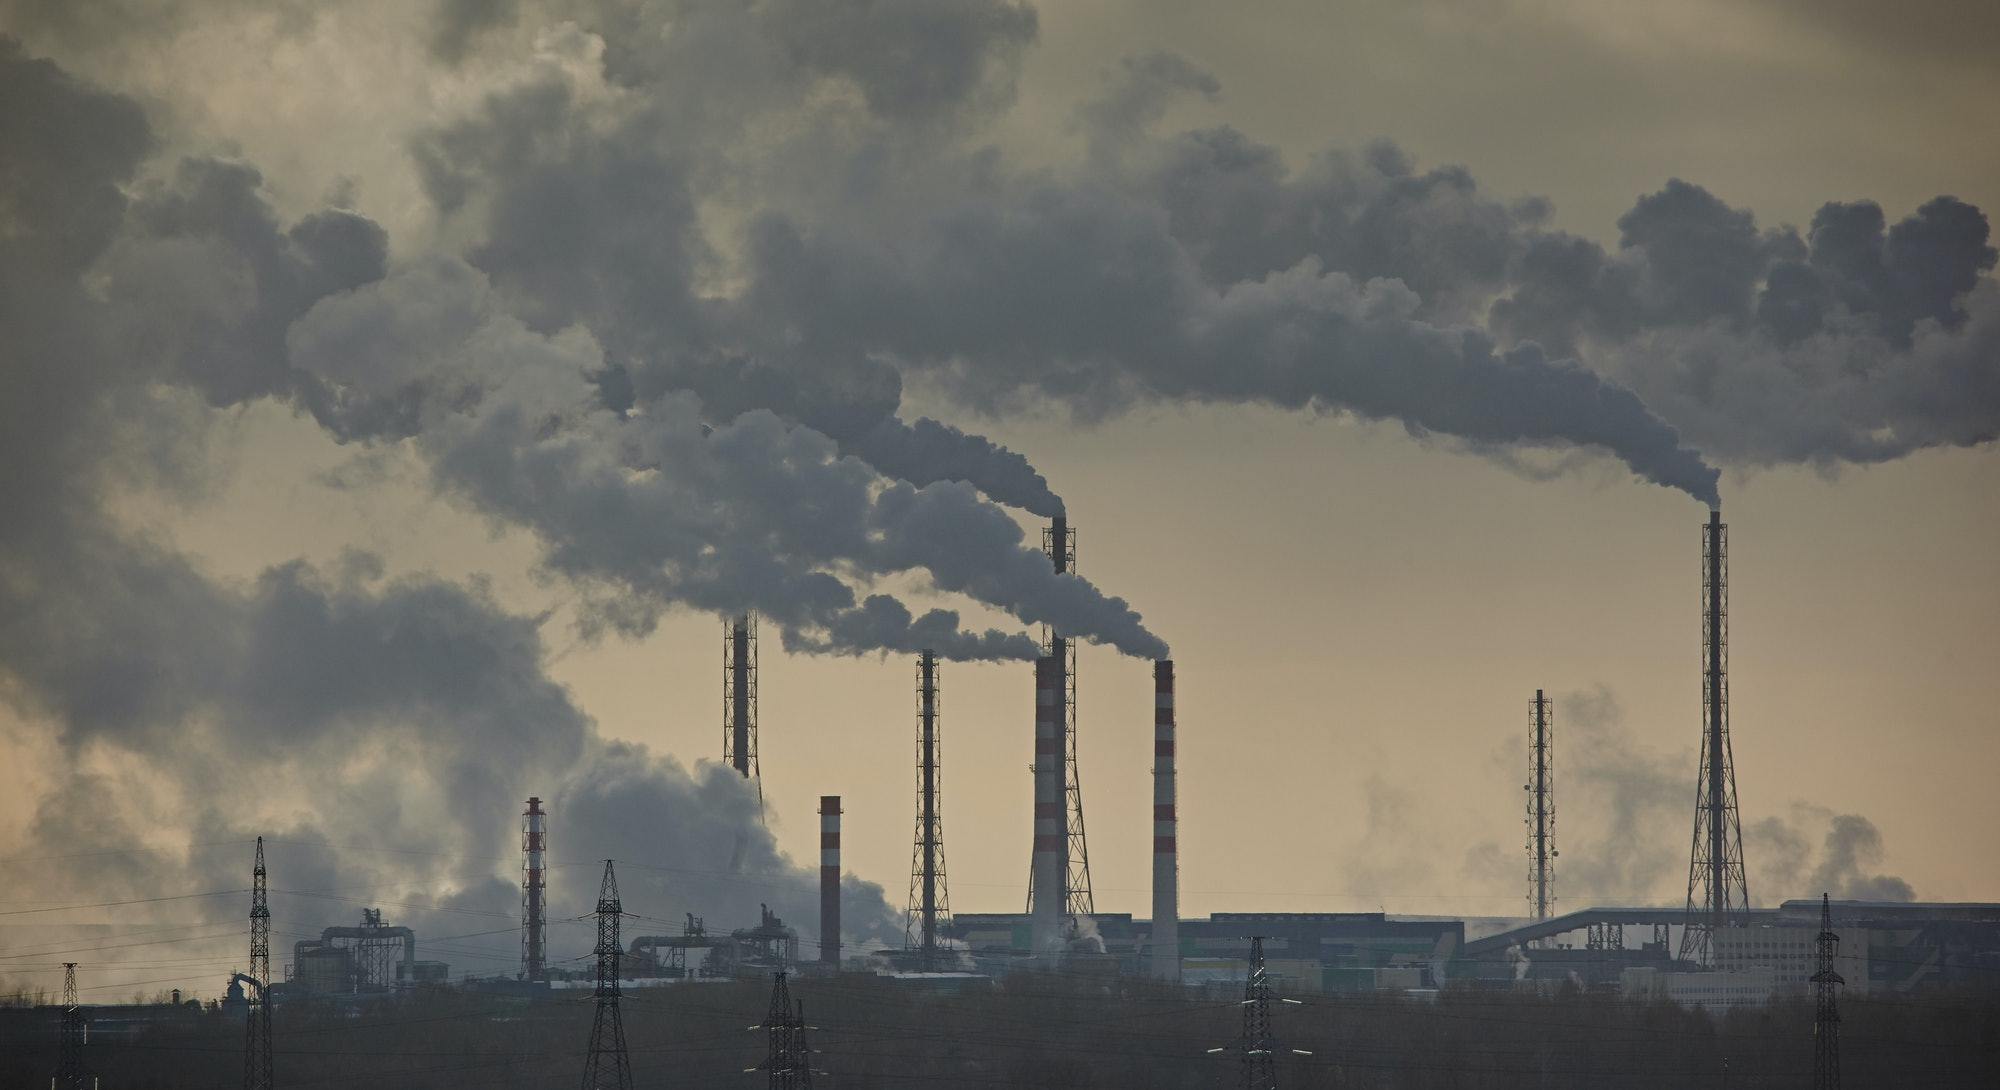 The plant emits smoke and smog from the pipes at mist cloudy, pollutants enter the atmosphere. Environmental disaster. Harmful emissions into. Exhaust gases. Chemical industry against the sky.